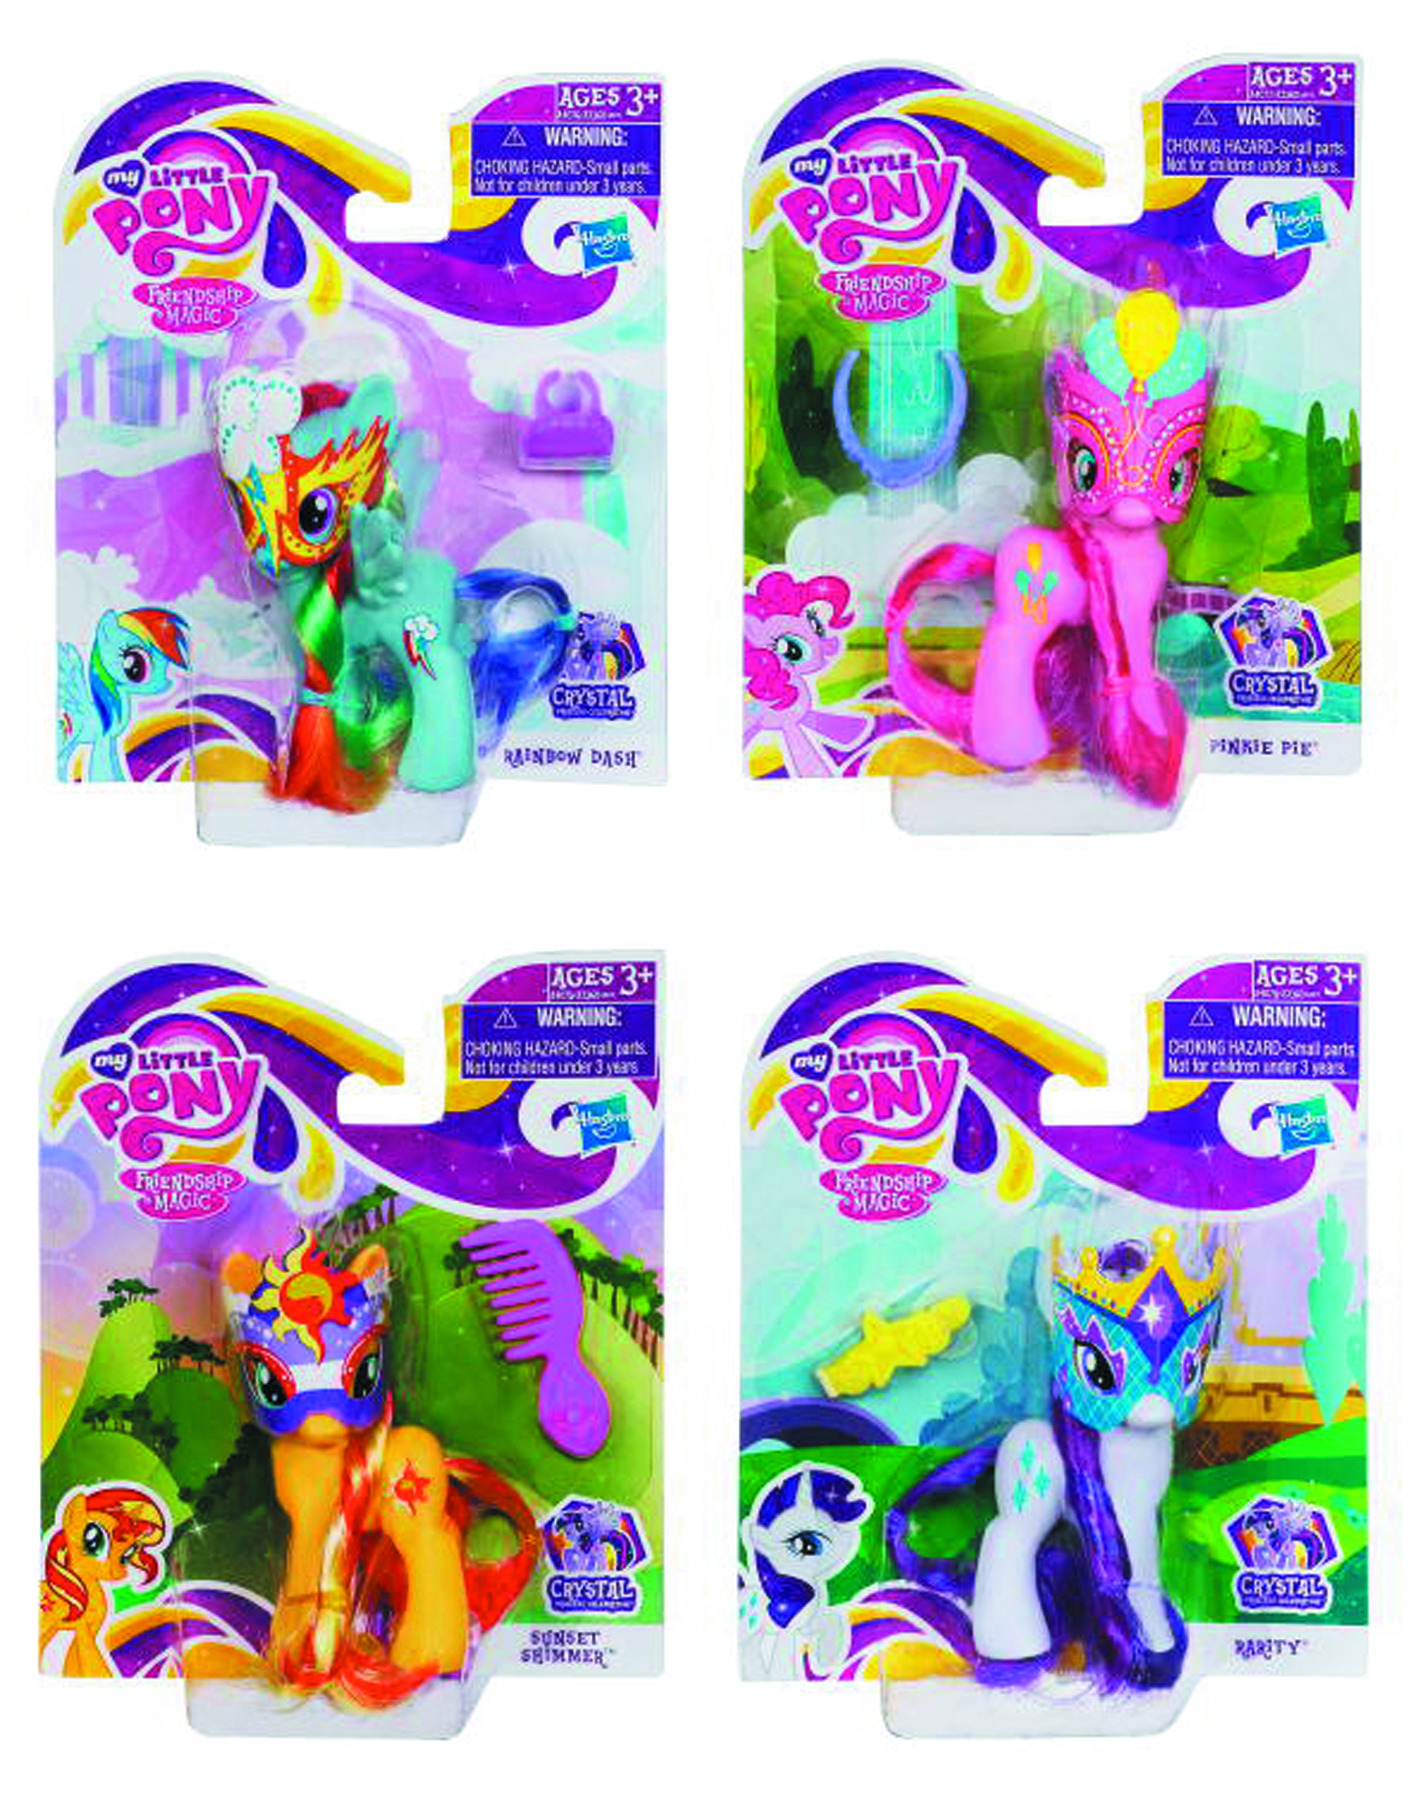 MY LITTLE PONY FIGURE ASST 201303